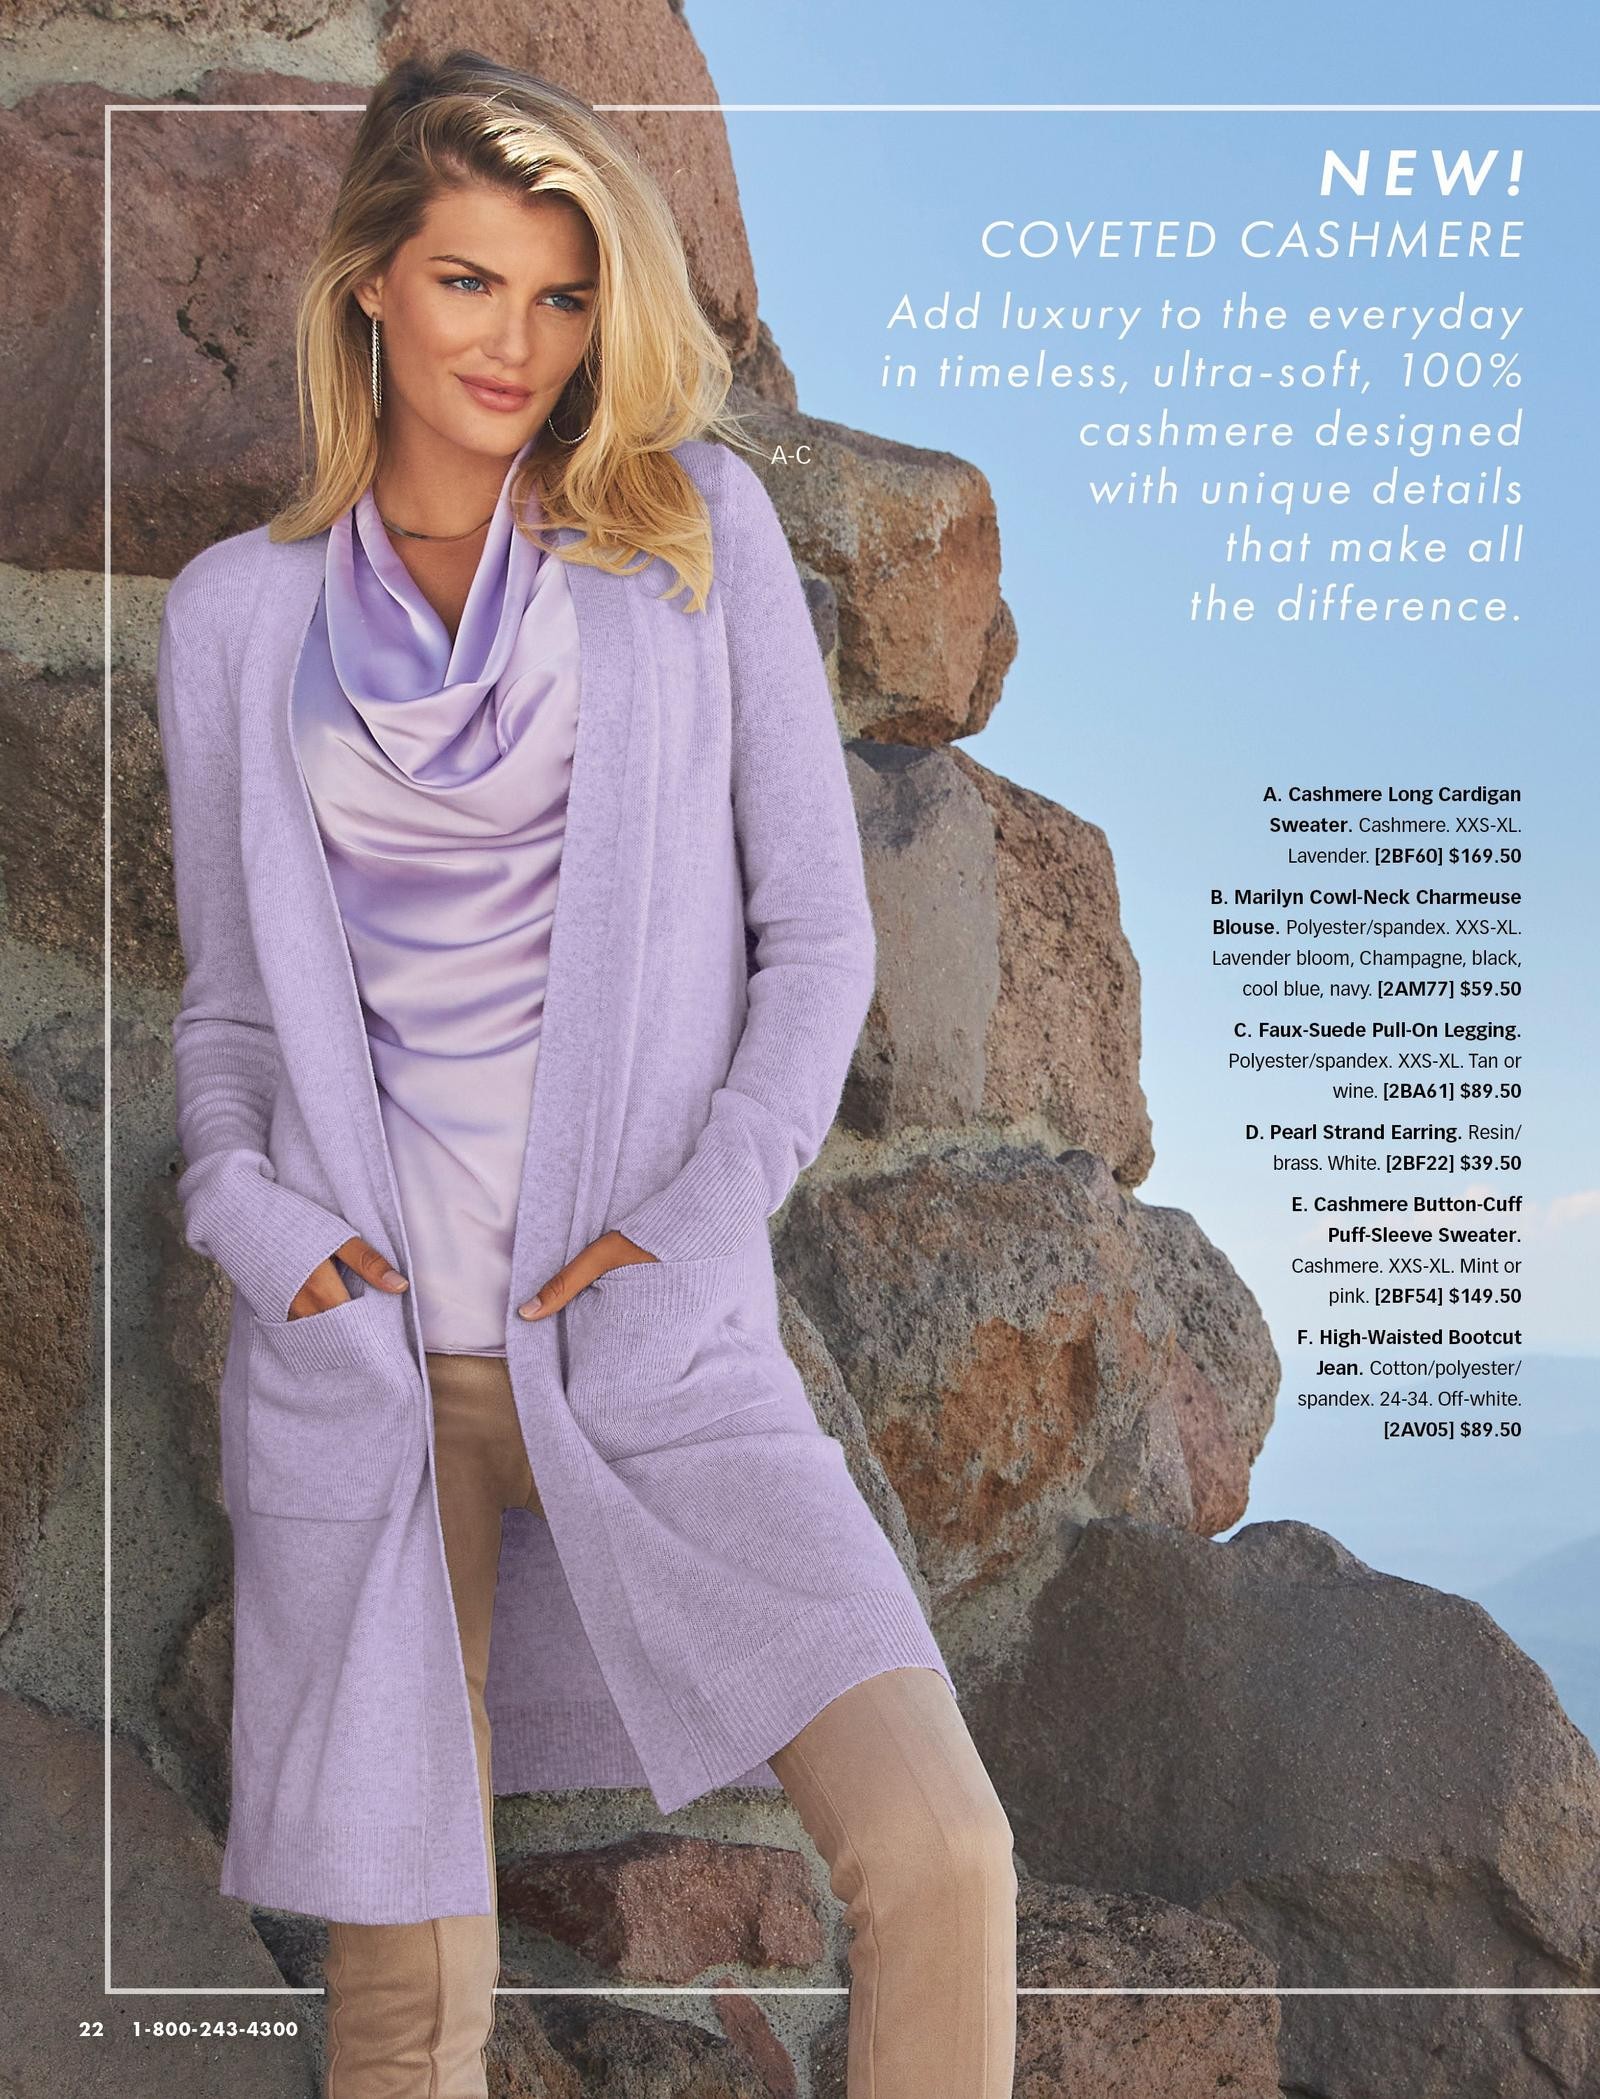 model wearing a lavender long cashmere cardigan, lavender cowl neck top, and tan suede leggings.